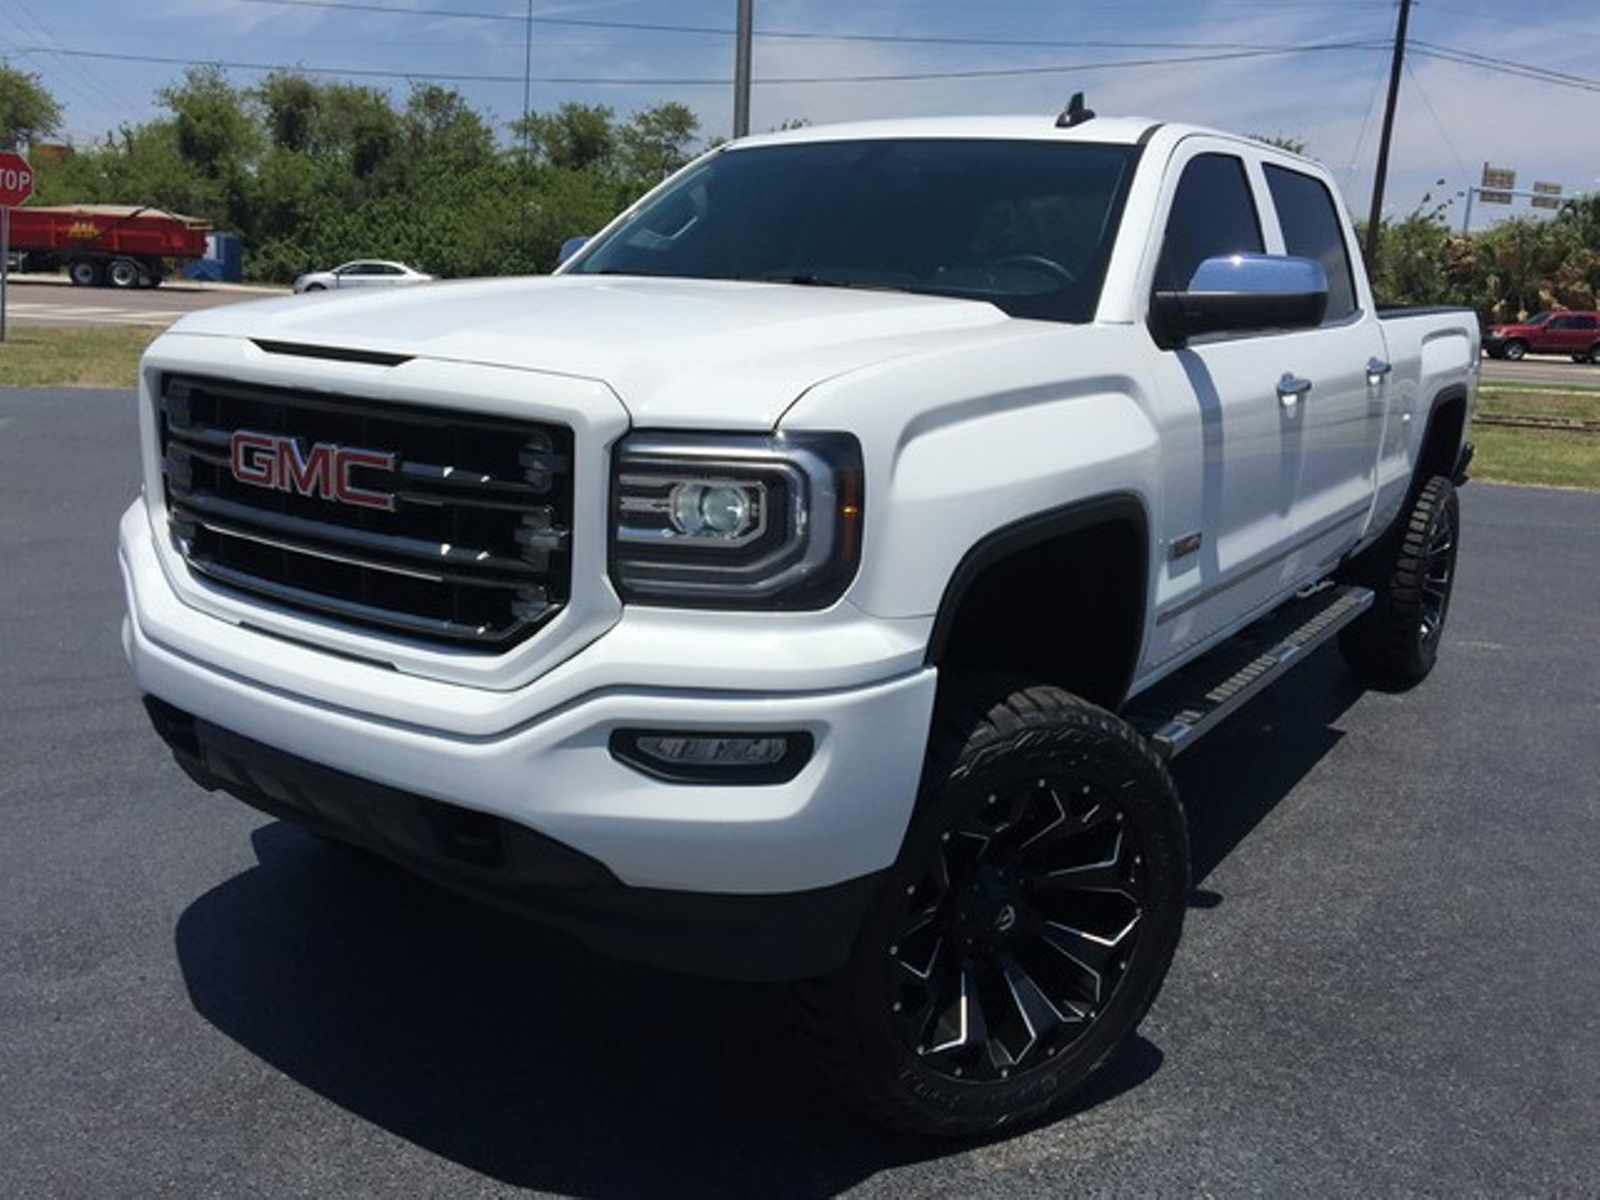 2016 gmc sierra 1500 all terrain custom lifted 22s florida bayshore automotive. Black Bedroom Furniture Sets. Home Design Ideas